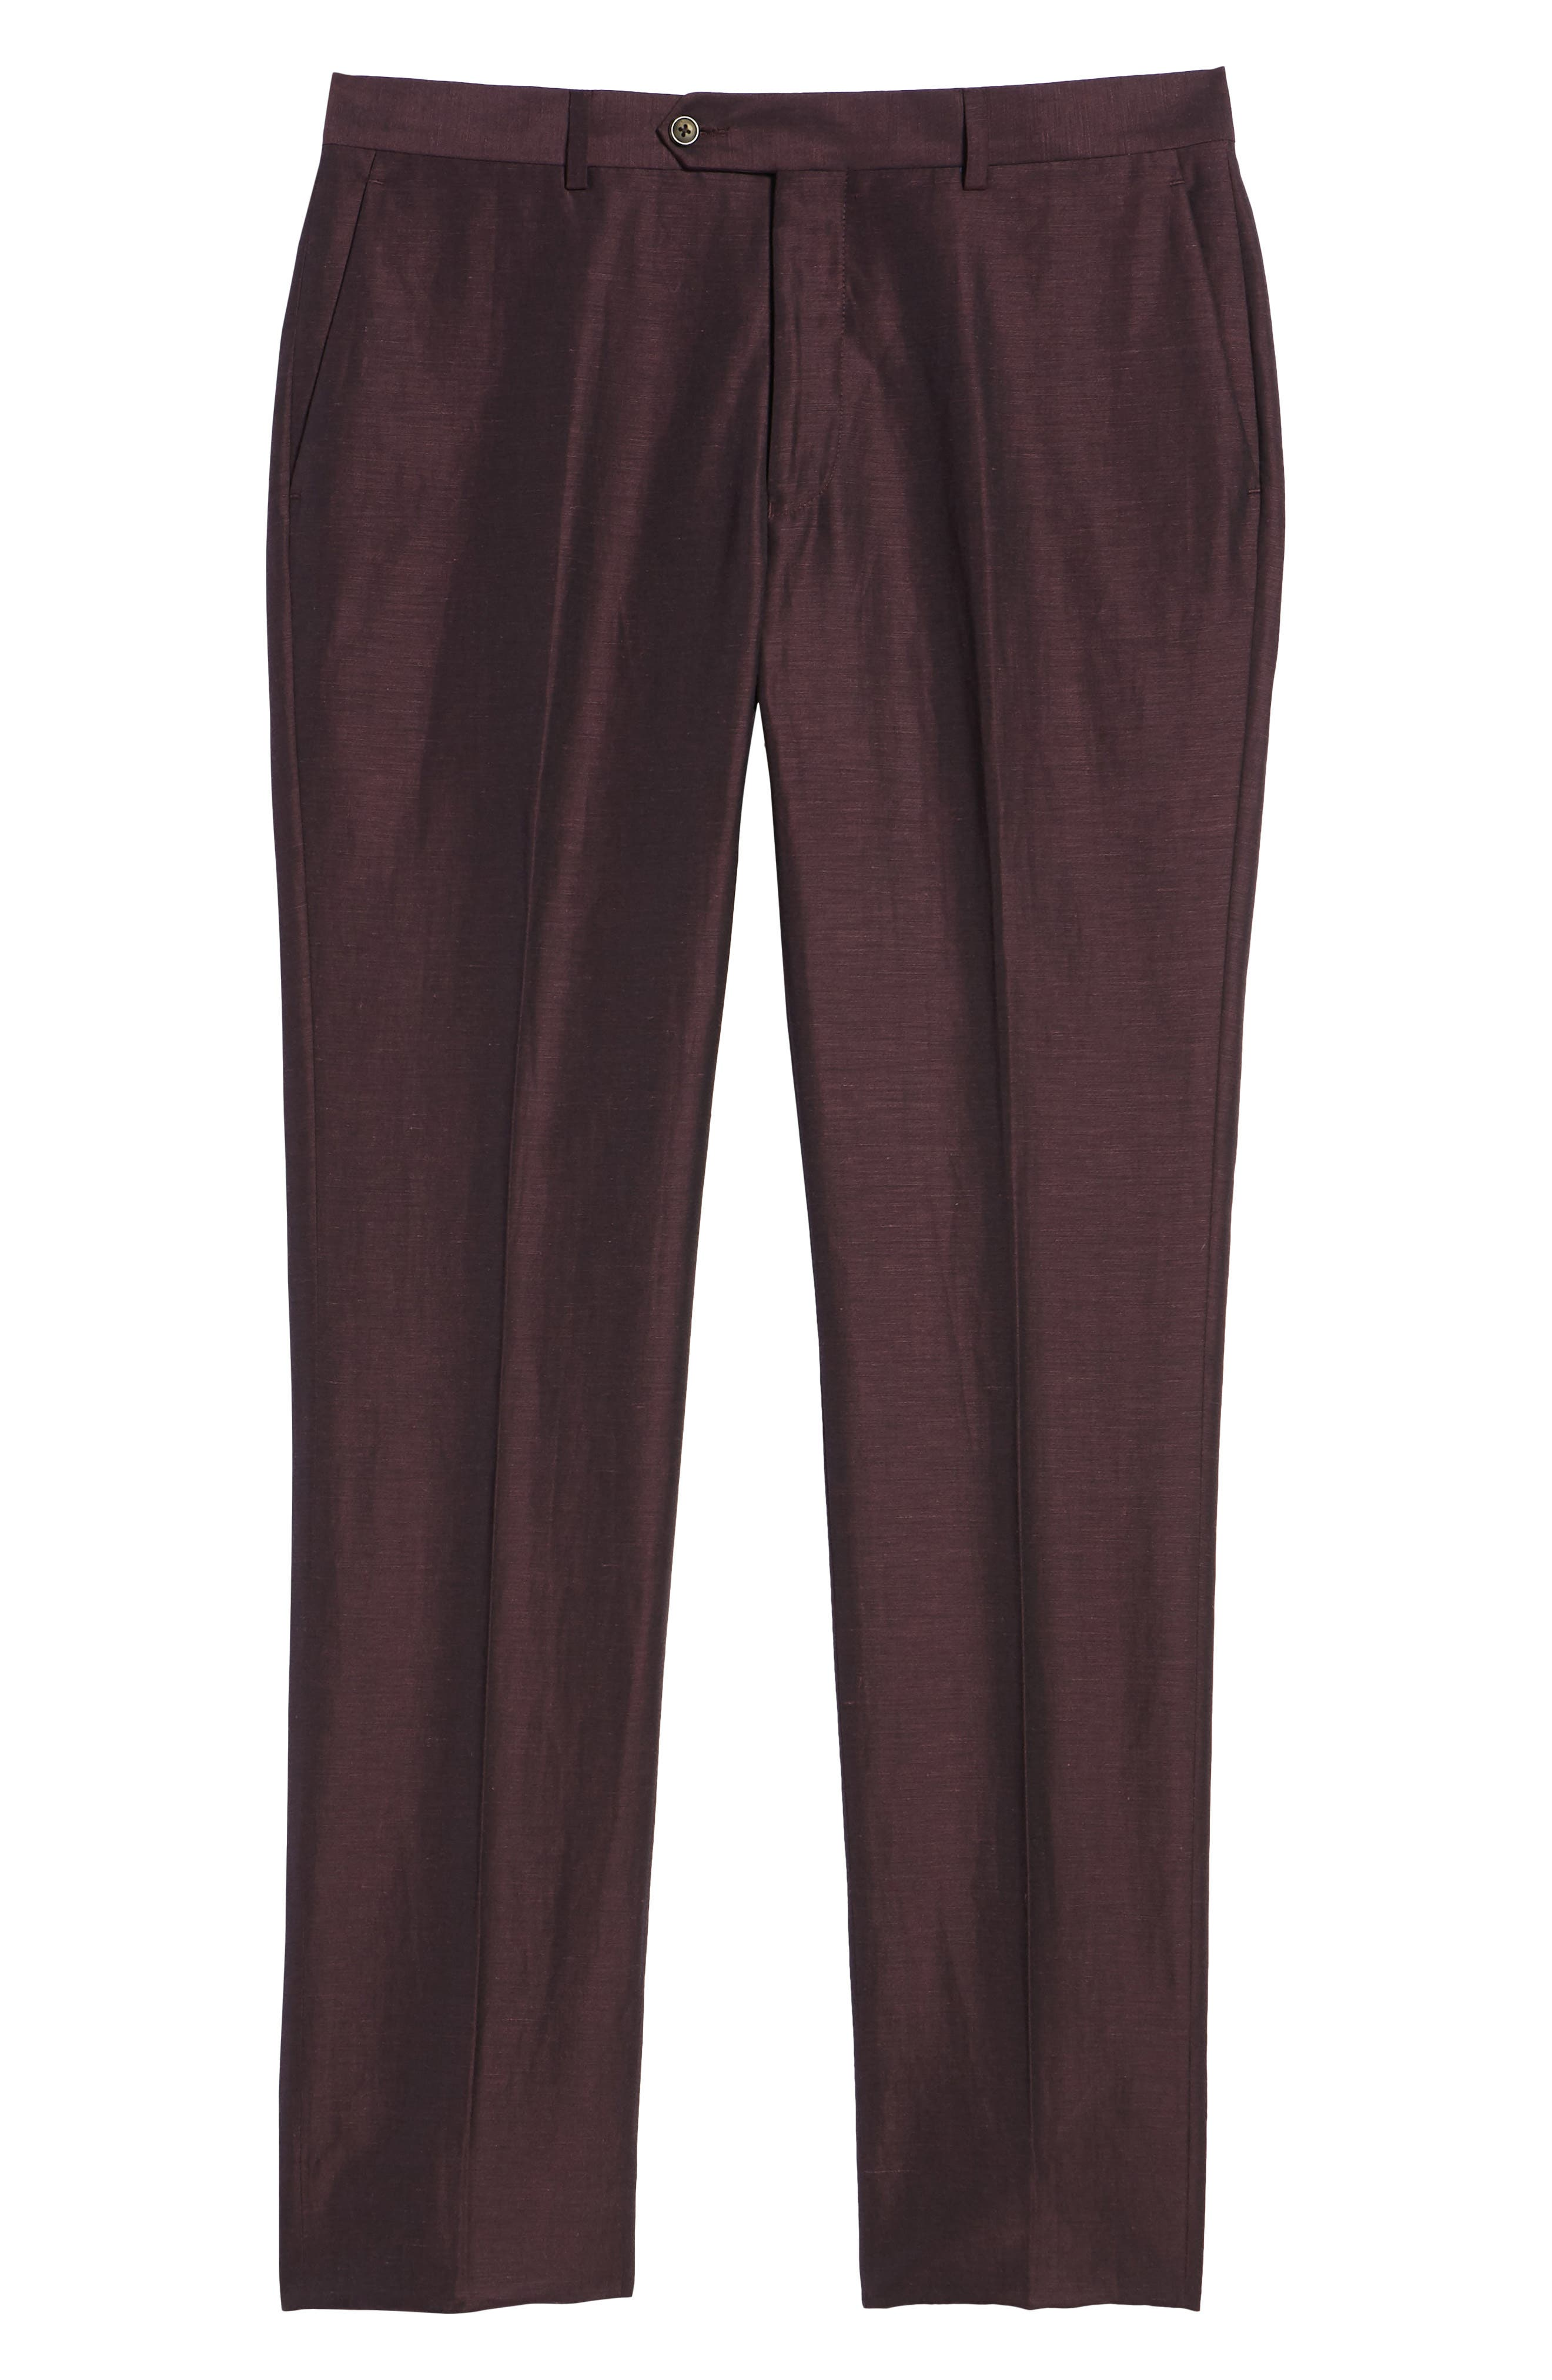 Dagger Flat Front Solid Wool & Linen Trousers,                             Alternate thumbnail 6, color,                             500